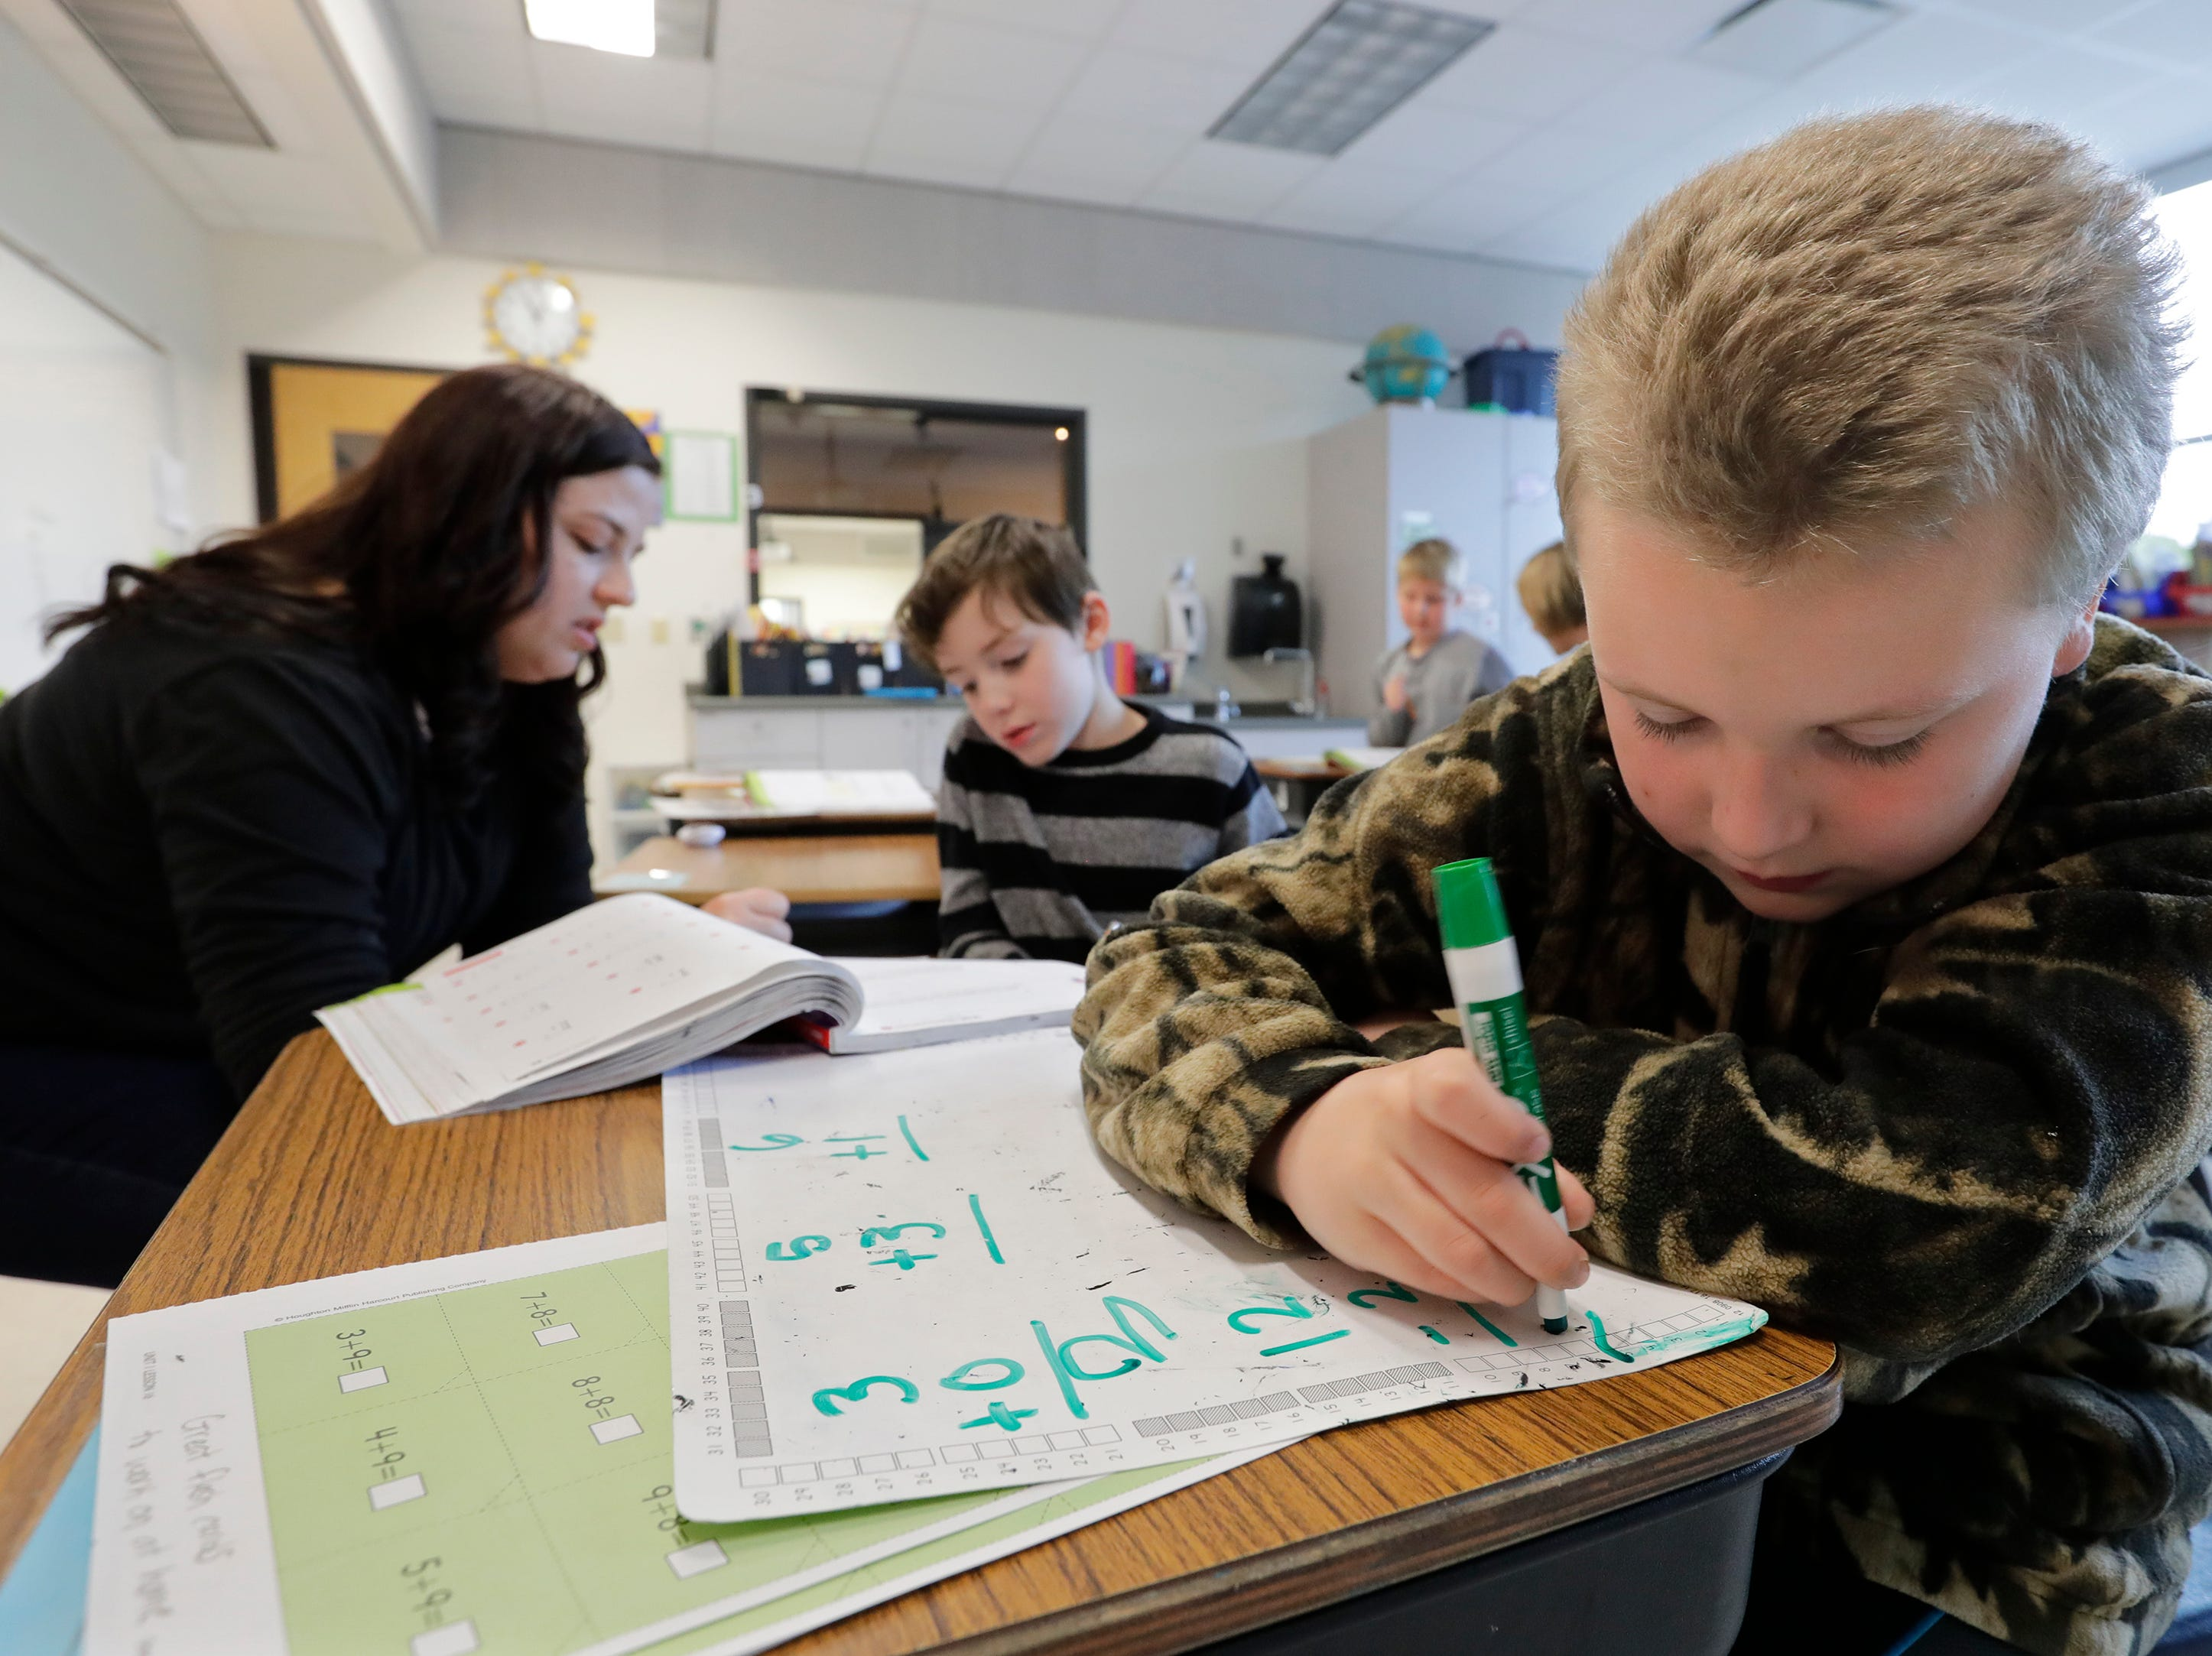 Hunter Doering, right, takes a math test as autism teacher Ashley Hermans works with Gavin Goerl Thursday, May 9, 2019, at Huntley Elementary School in Appleton, Wis. 